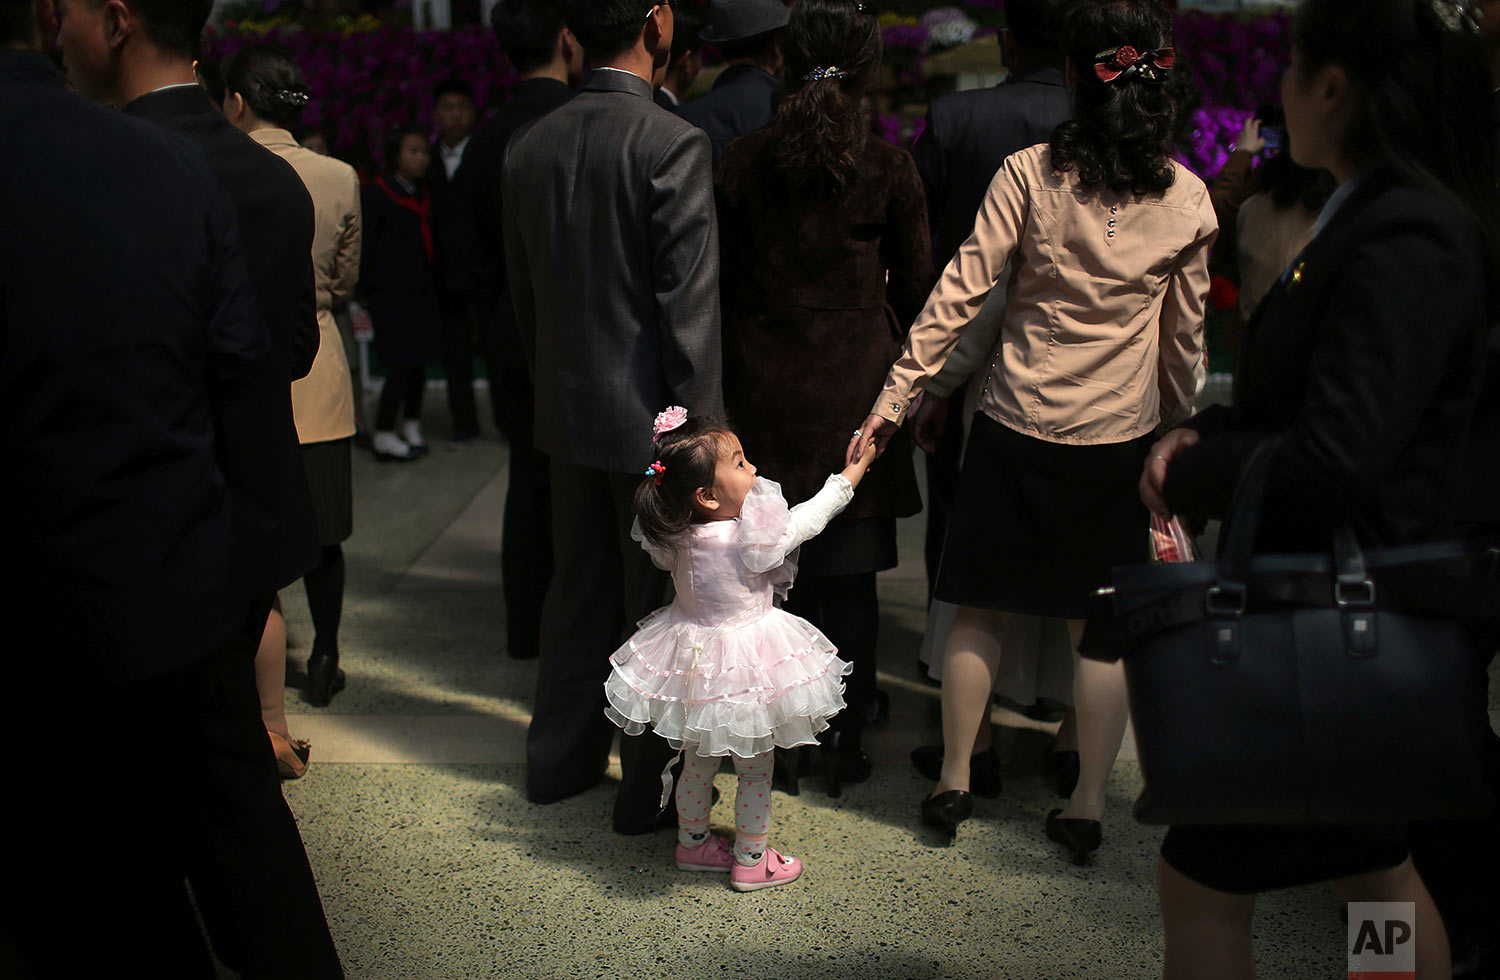 A family visits a flower festival during a celebration to mark the 105th anniversary of the birth of the late leader Kim Il Sung on April 16, 2017, in Pyongyang, North Korea. (AP Photo/Wong Maye-E)